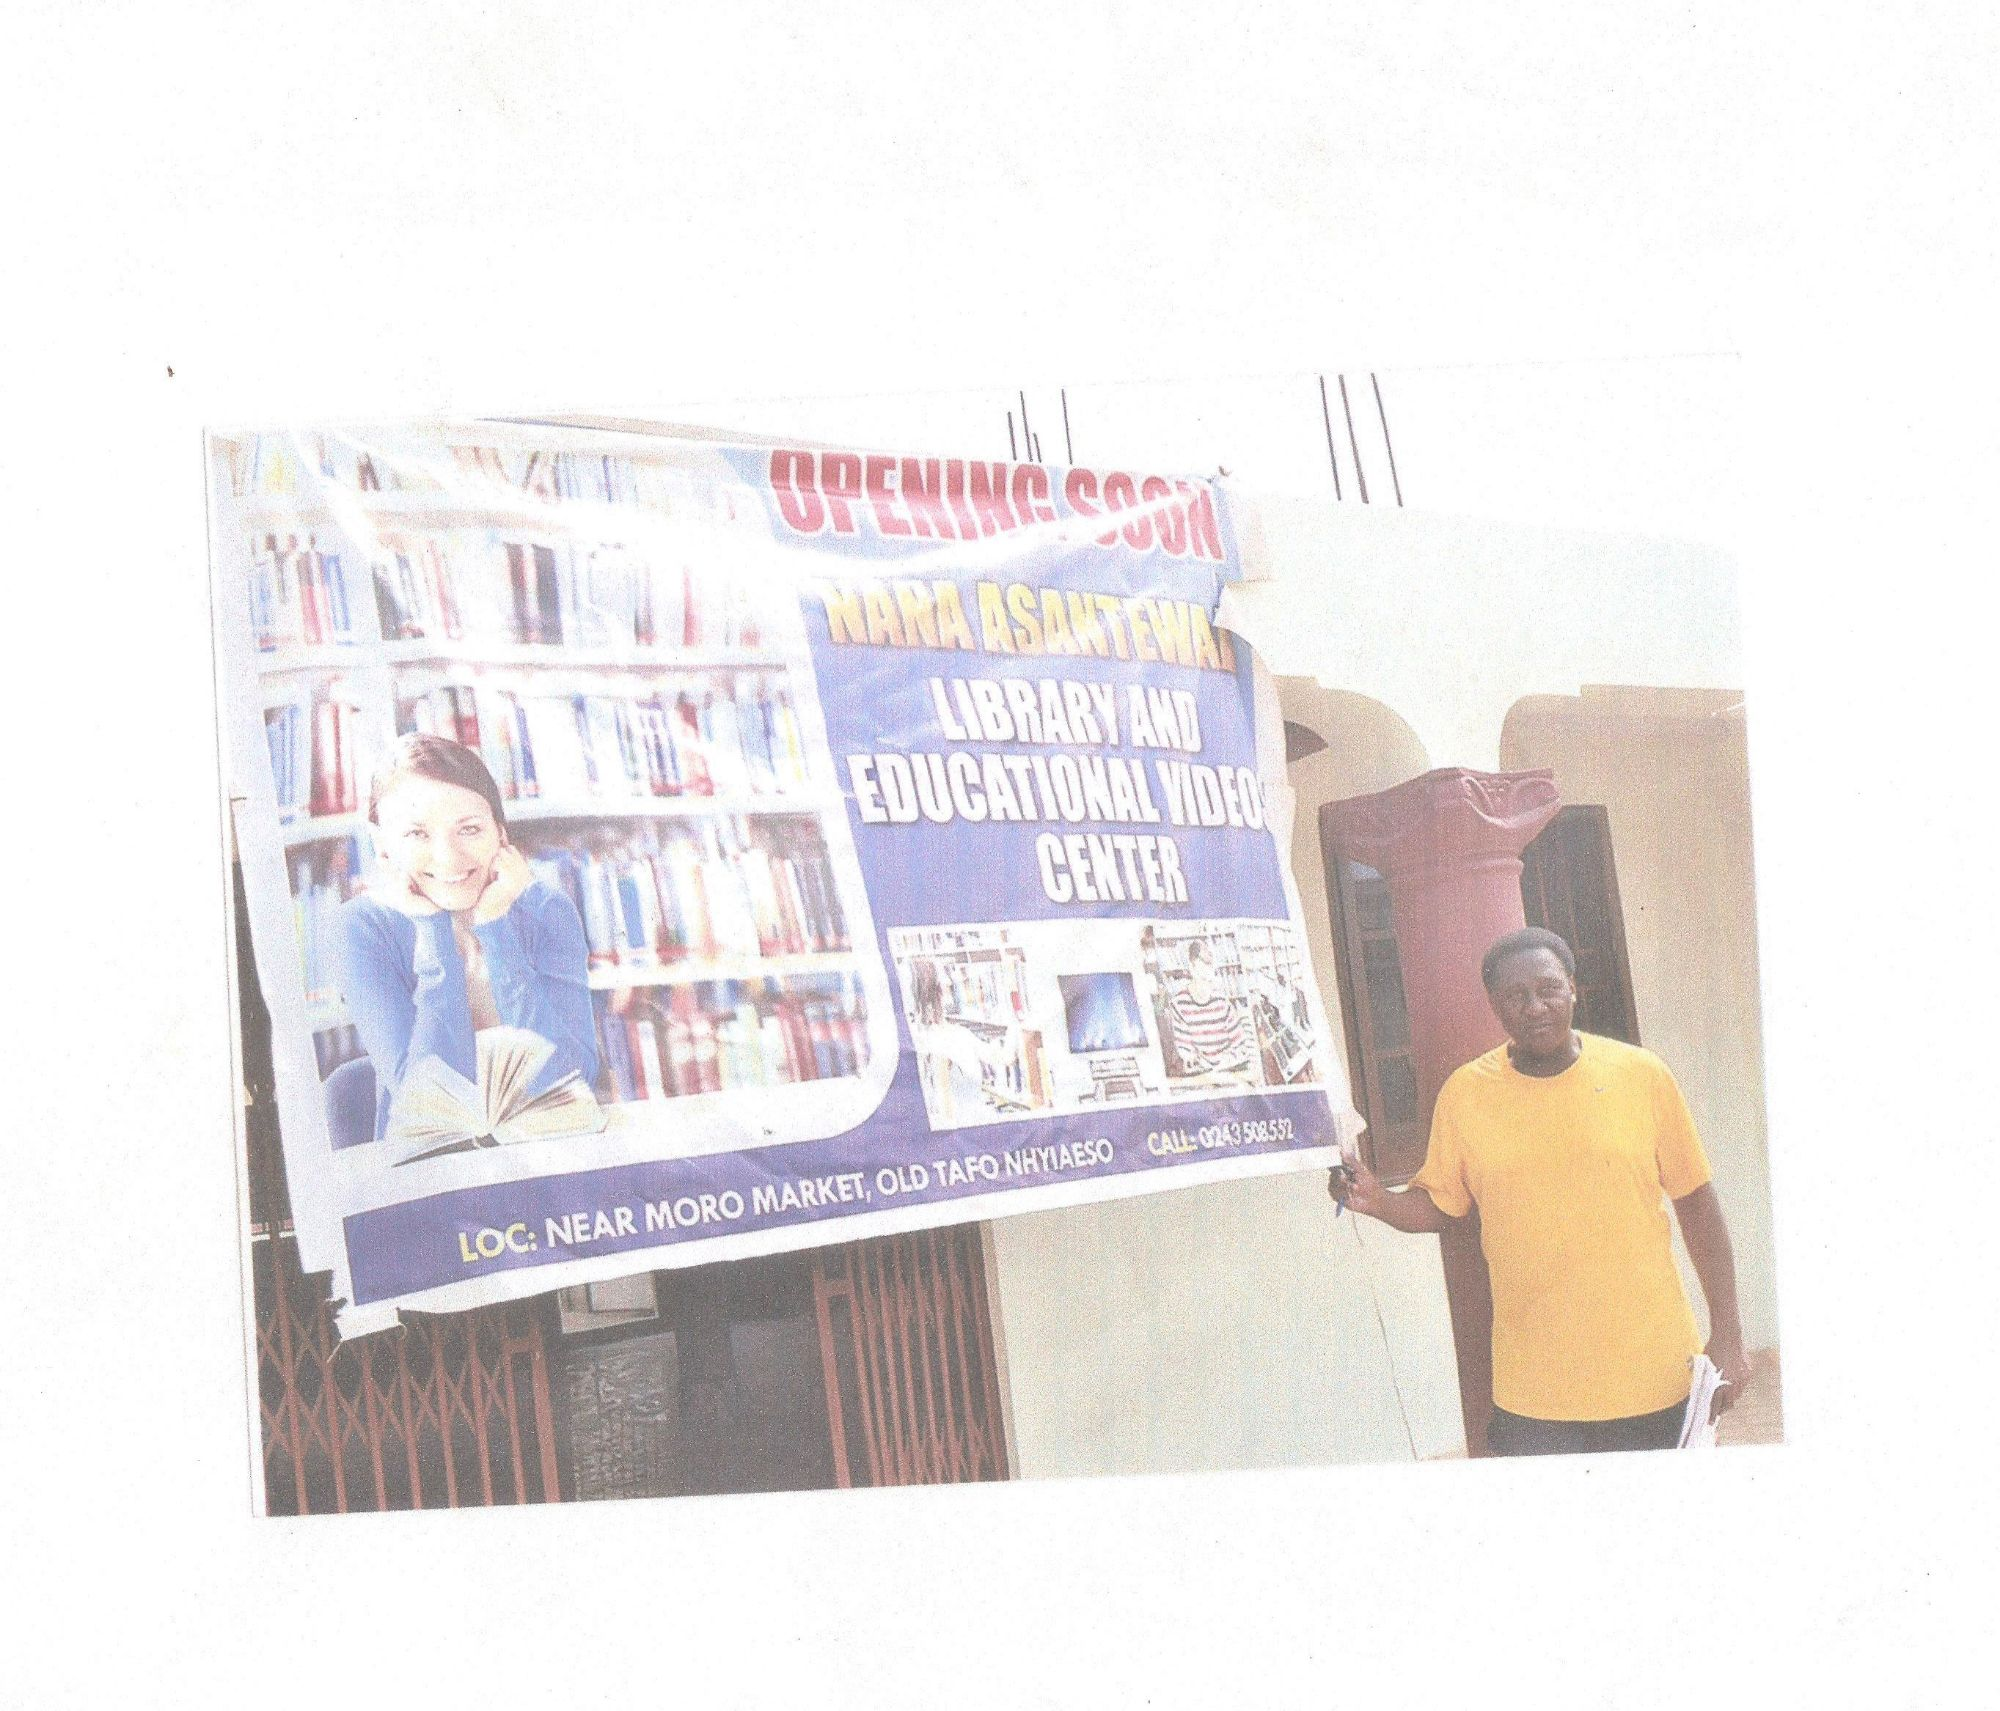 NANA ASANTEWAAH LIBRARY AND EDUCATIONAL VIDEOS CENTER Preview 1